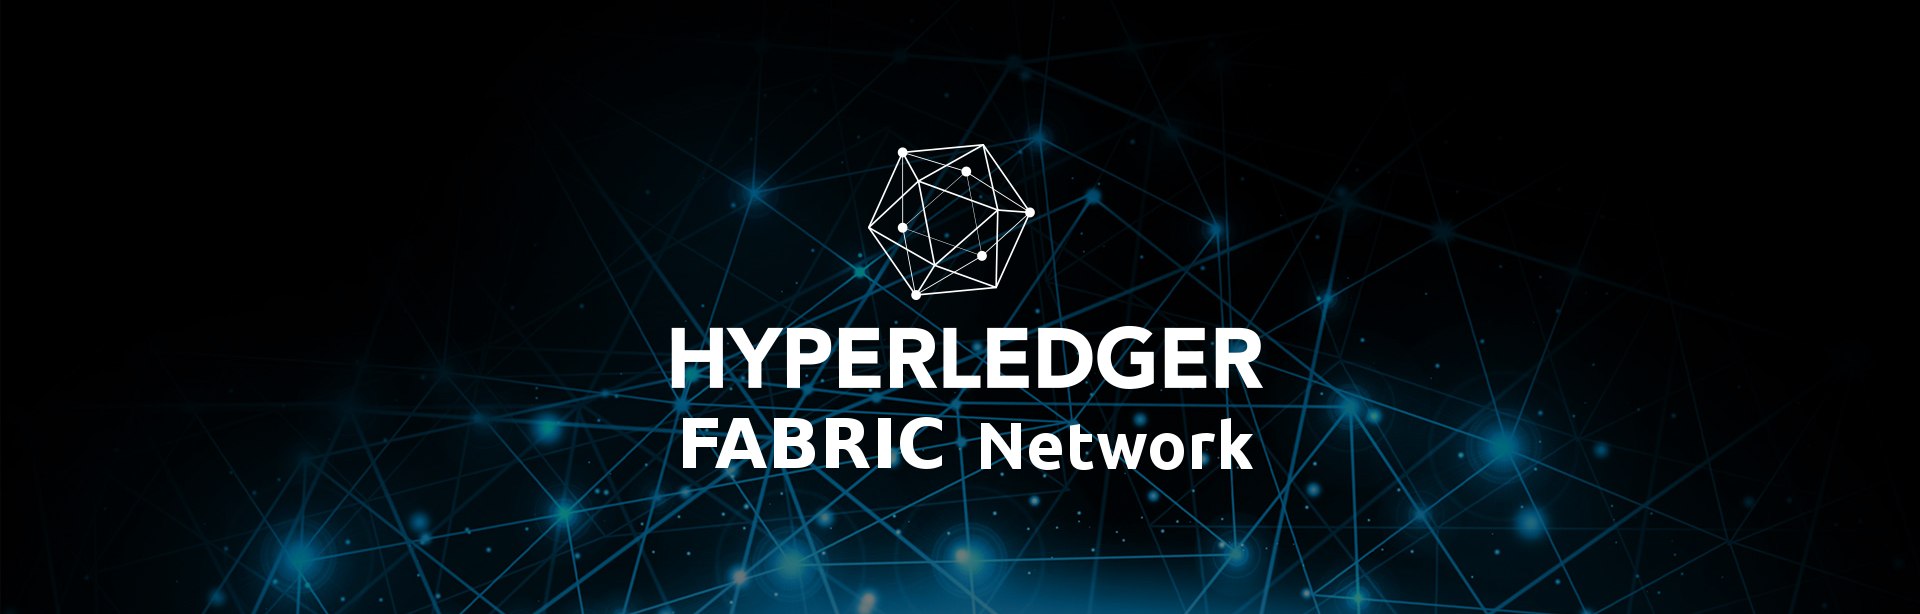 Tutorial Hyperledger Fabric: How to build your first network?